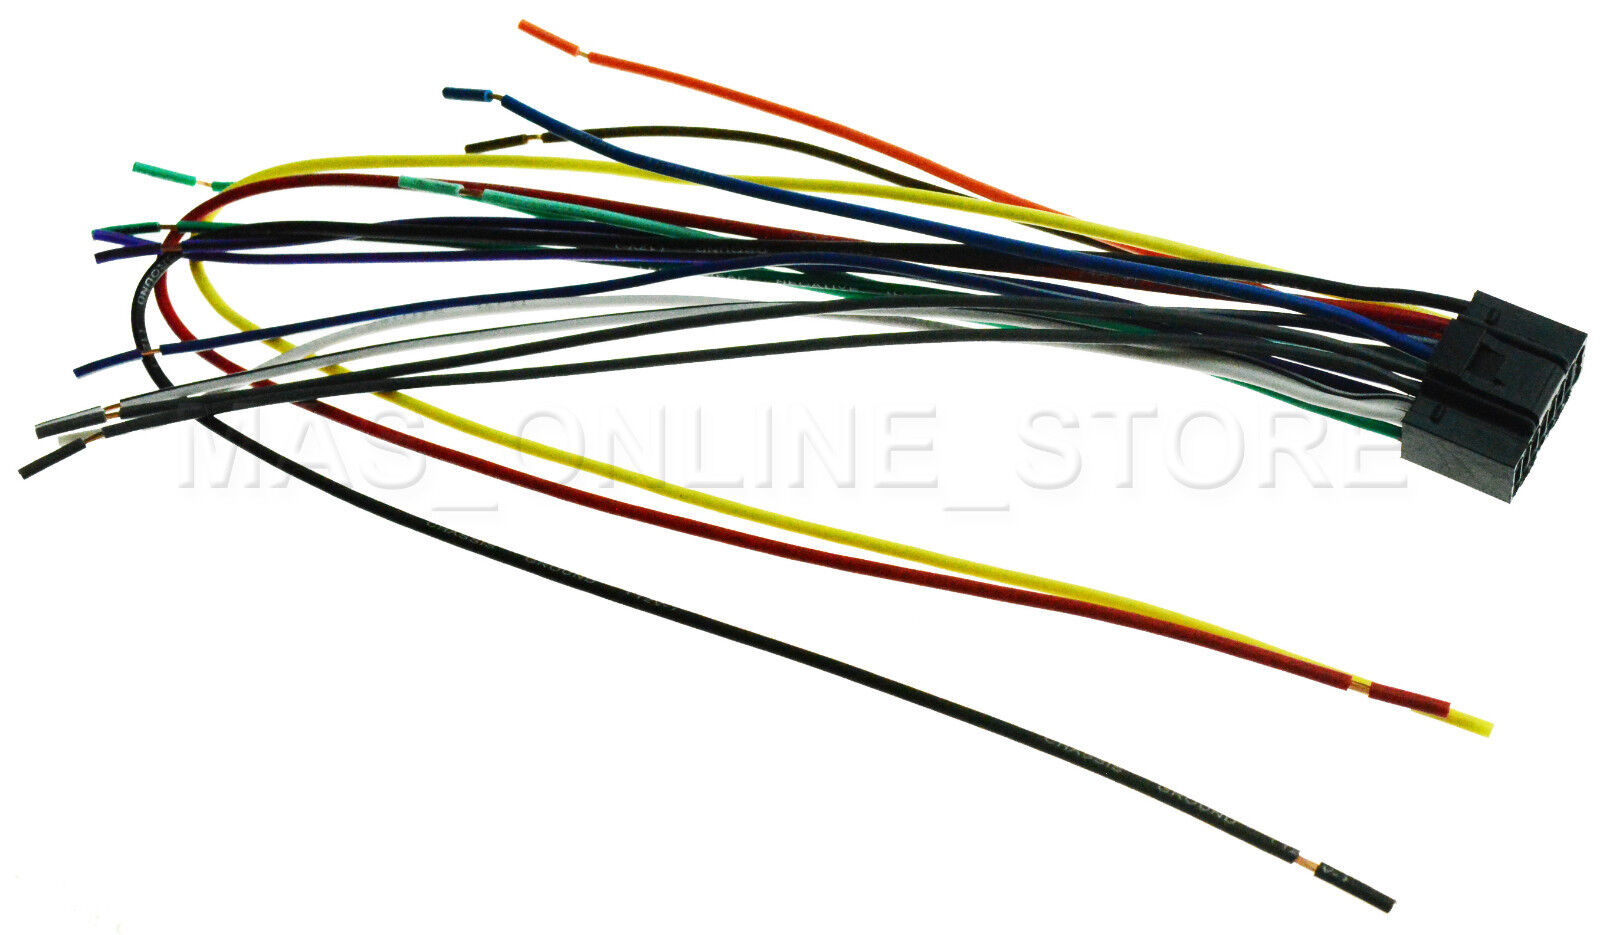 Kenwood Kmr 550u Wiring Diagram Library Norton Secured Powered By Verisign Wire Harness For